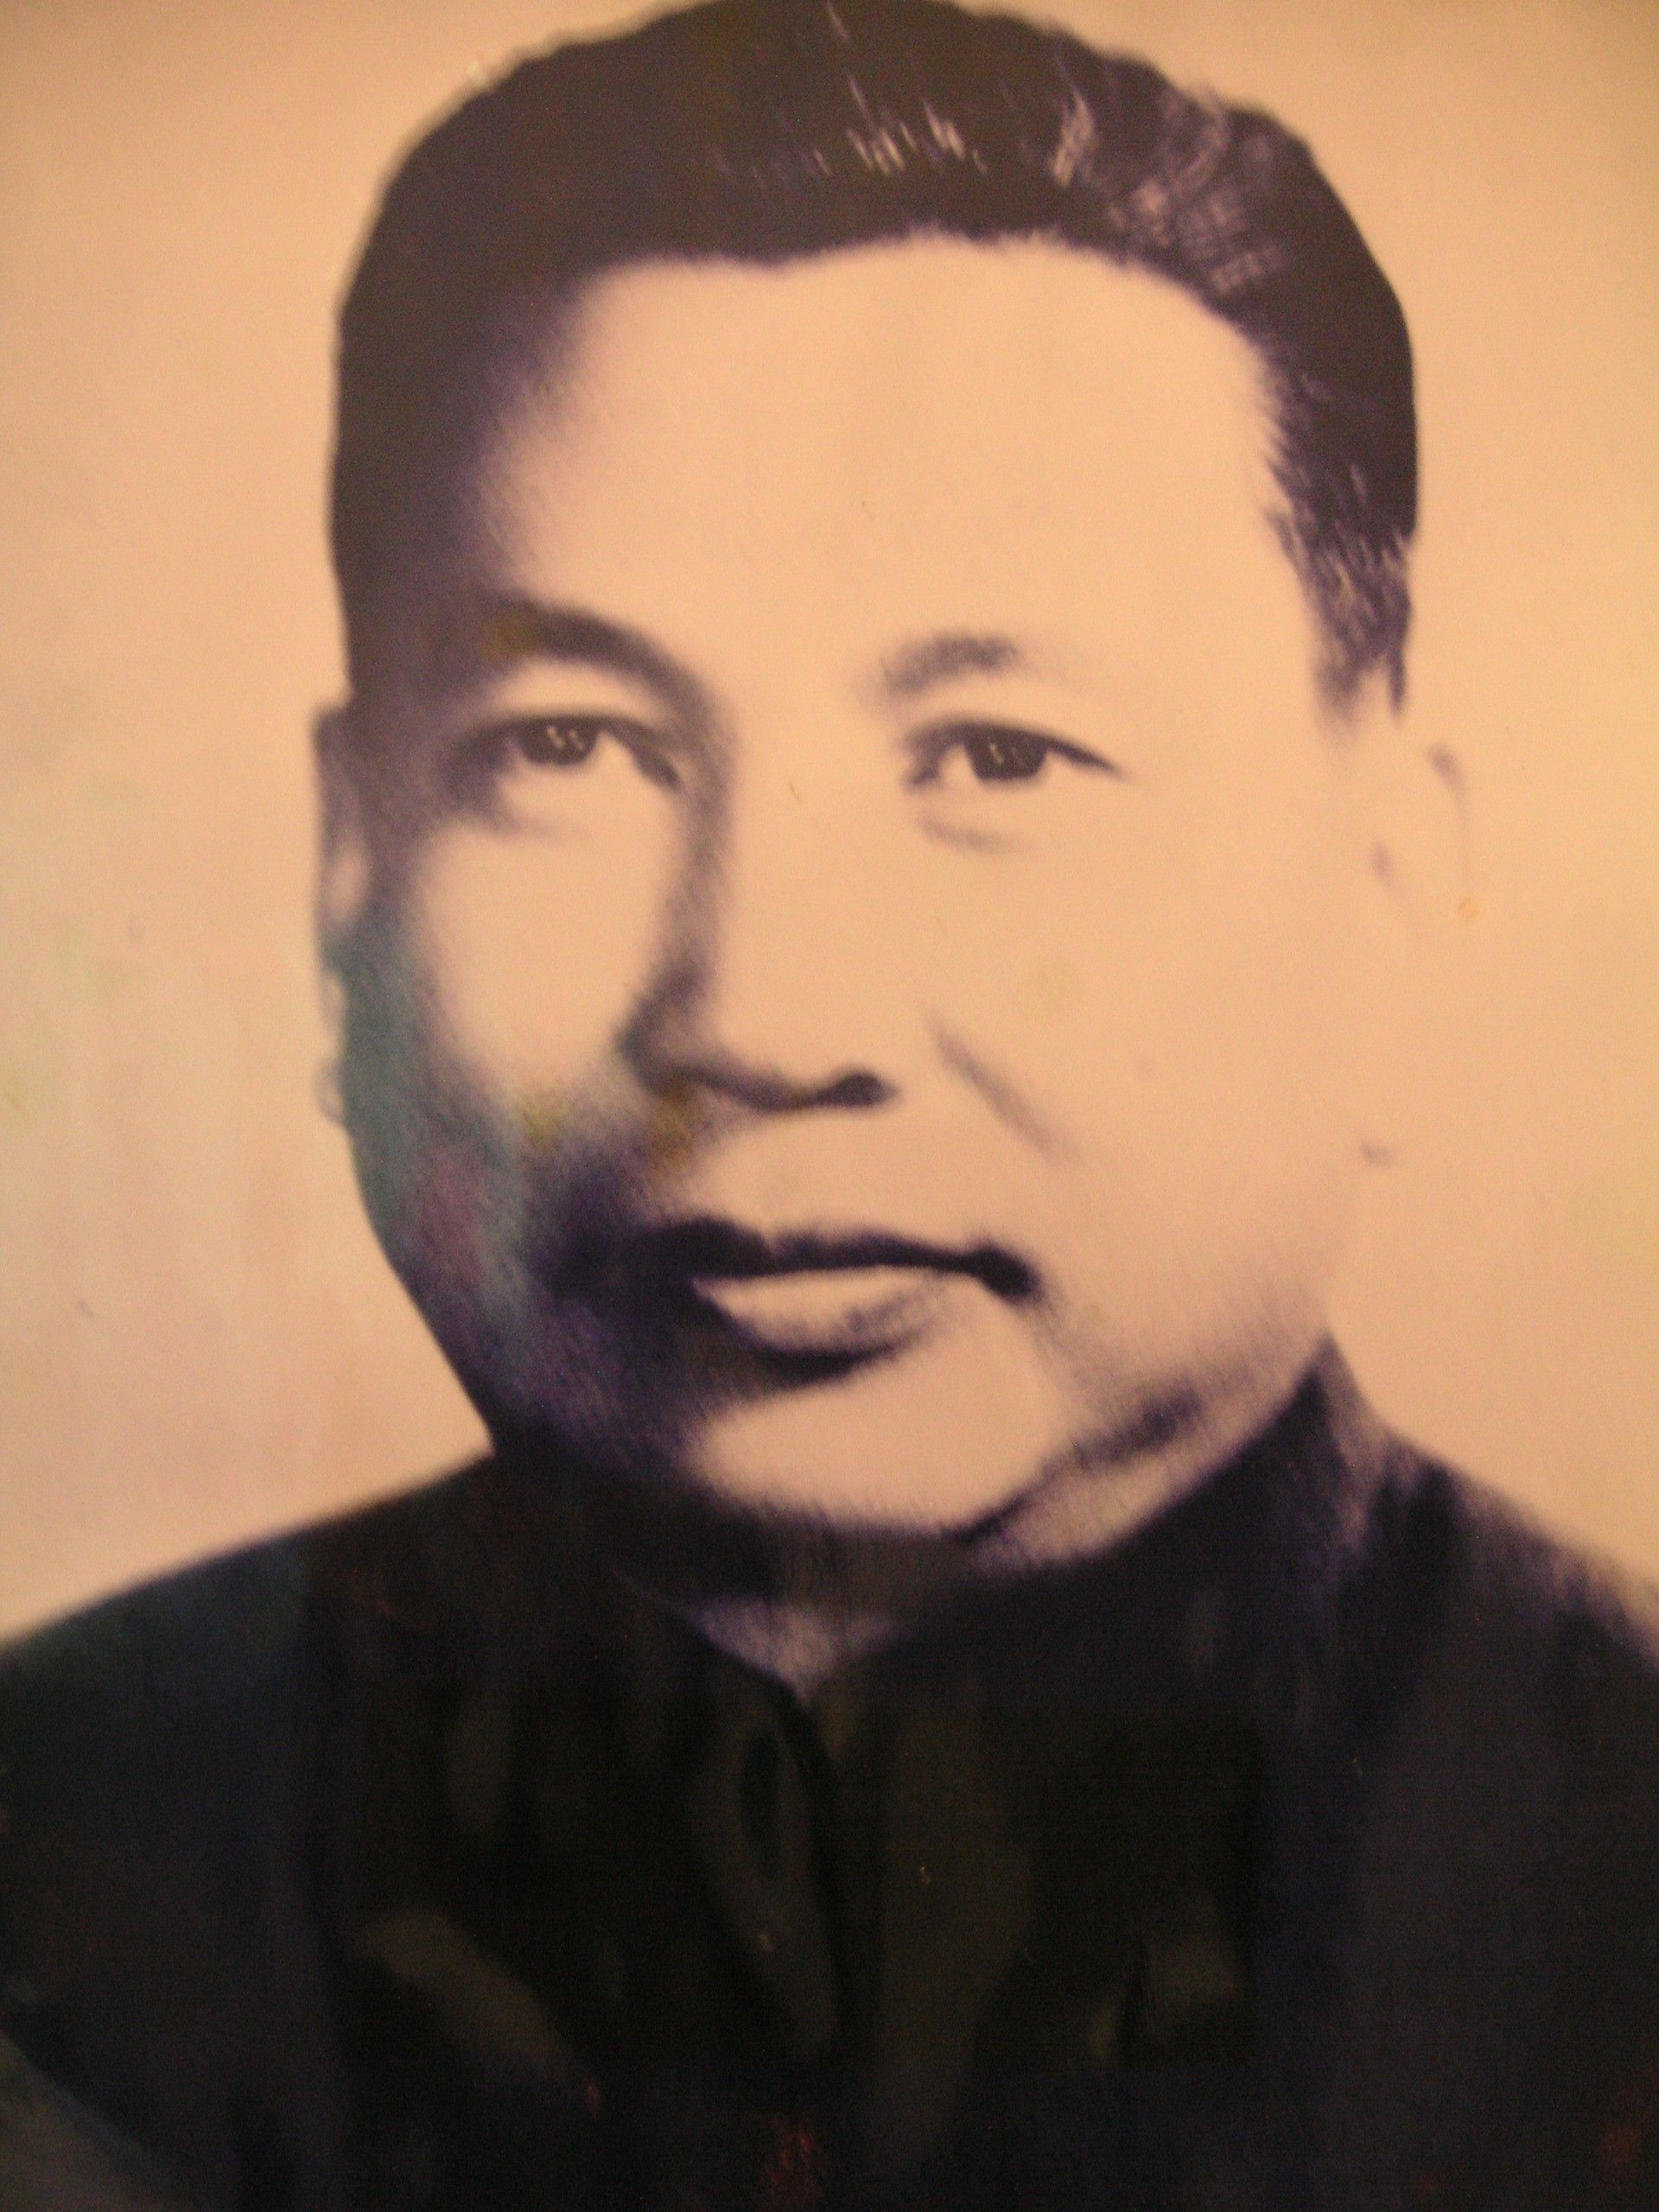 Pol Pot Quotes Pol Pot The Genocidal Leader Of The Khmer Rouge Was Responsible